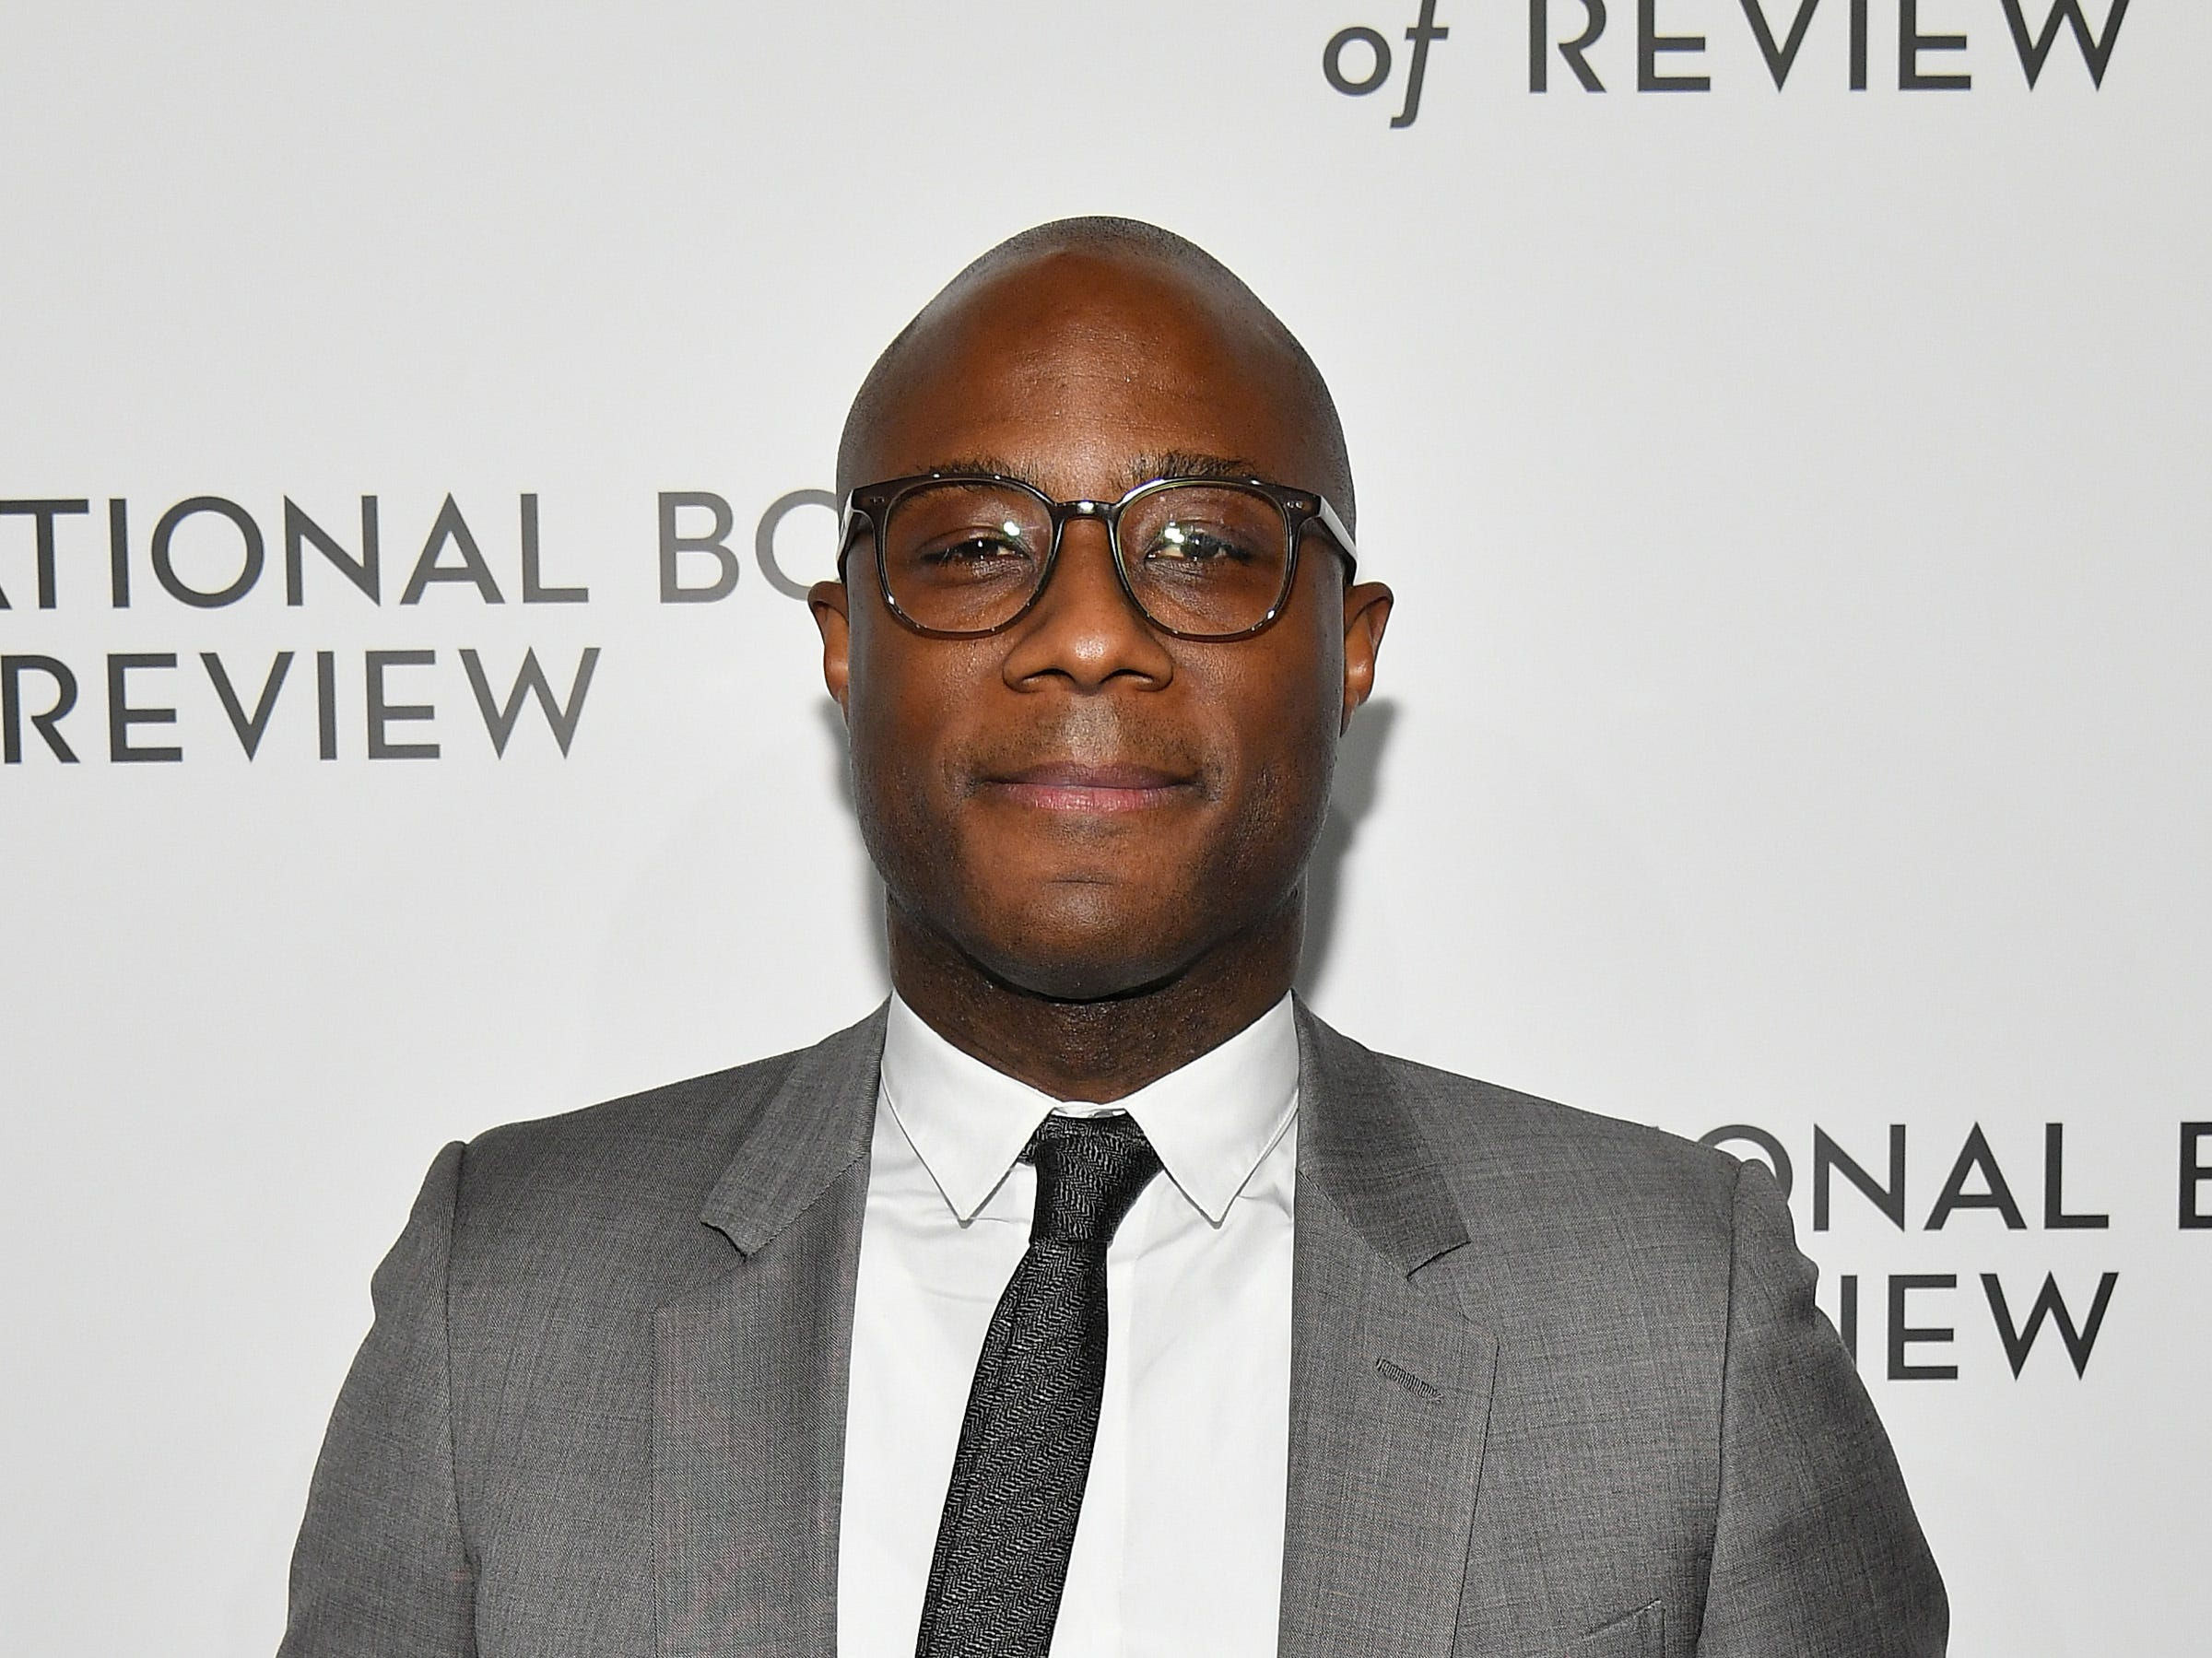 NEW YORK, NY - JANUARY 08:  Barry Jenkins attends The National Board of Review Annual Awards Gala at Cipriani 42nd Street on January 8, 2019 in New York City.  (Photo by Dia Dipasupil/Getty Images for National Board of Review) ORG XMIT: 775259363 ORIG FILE ID: 1079453382